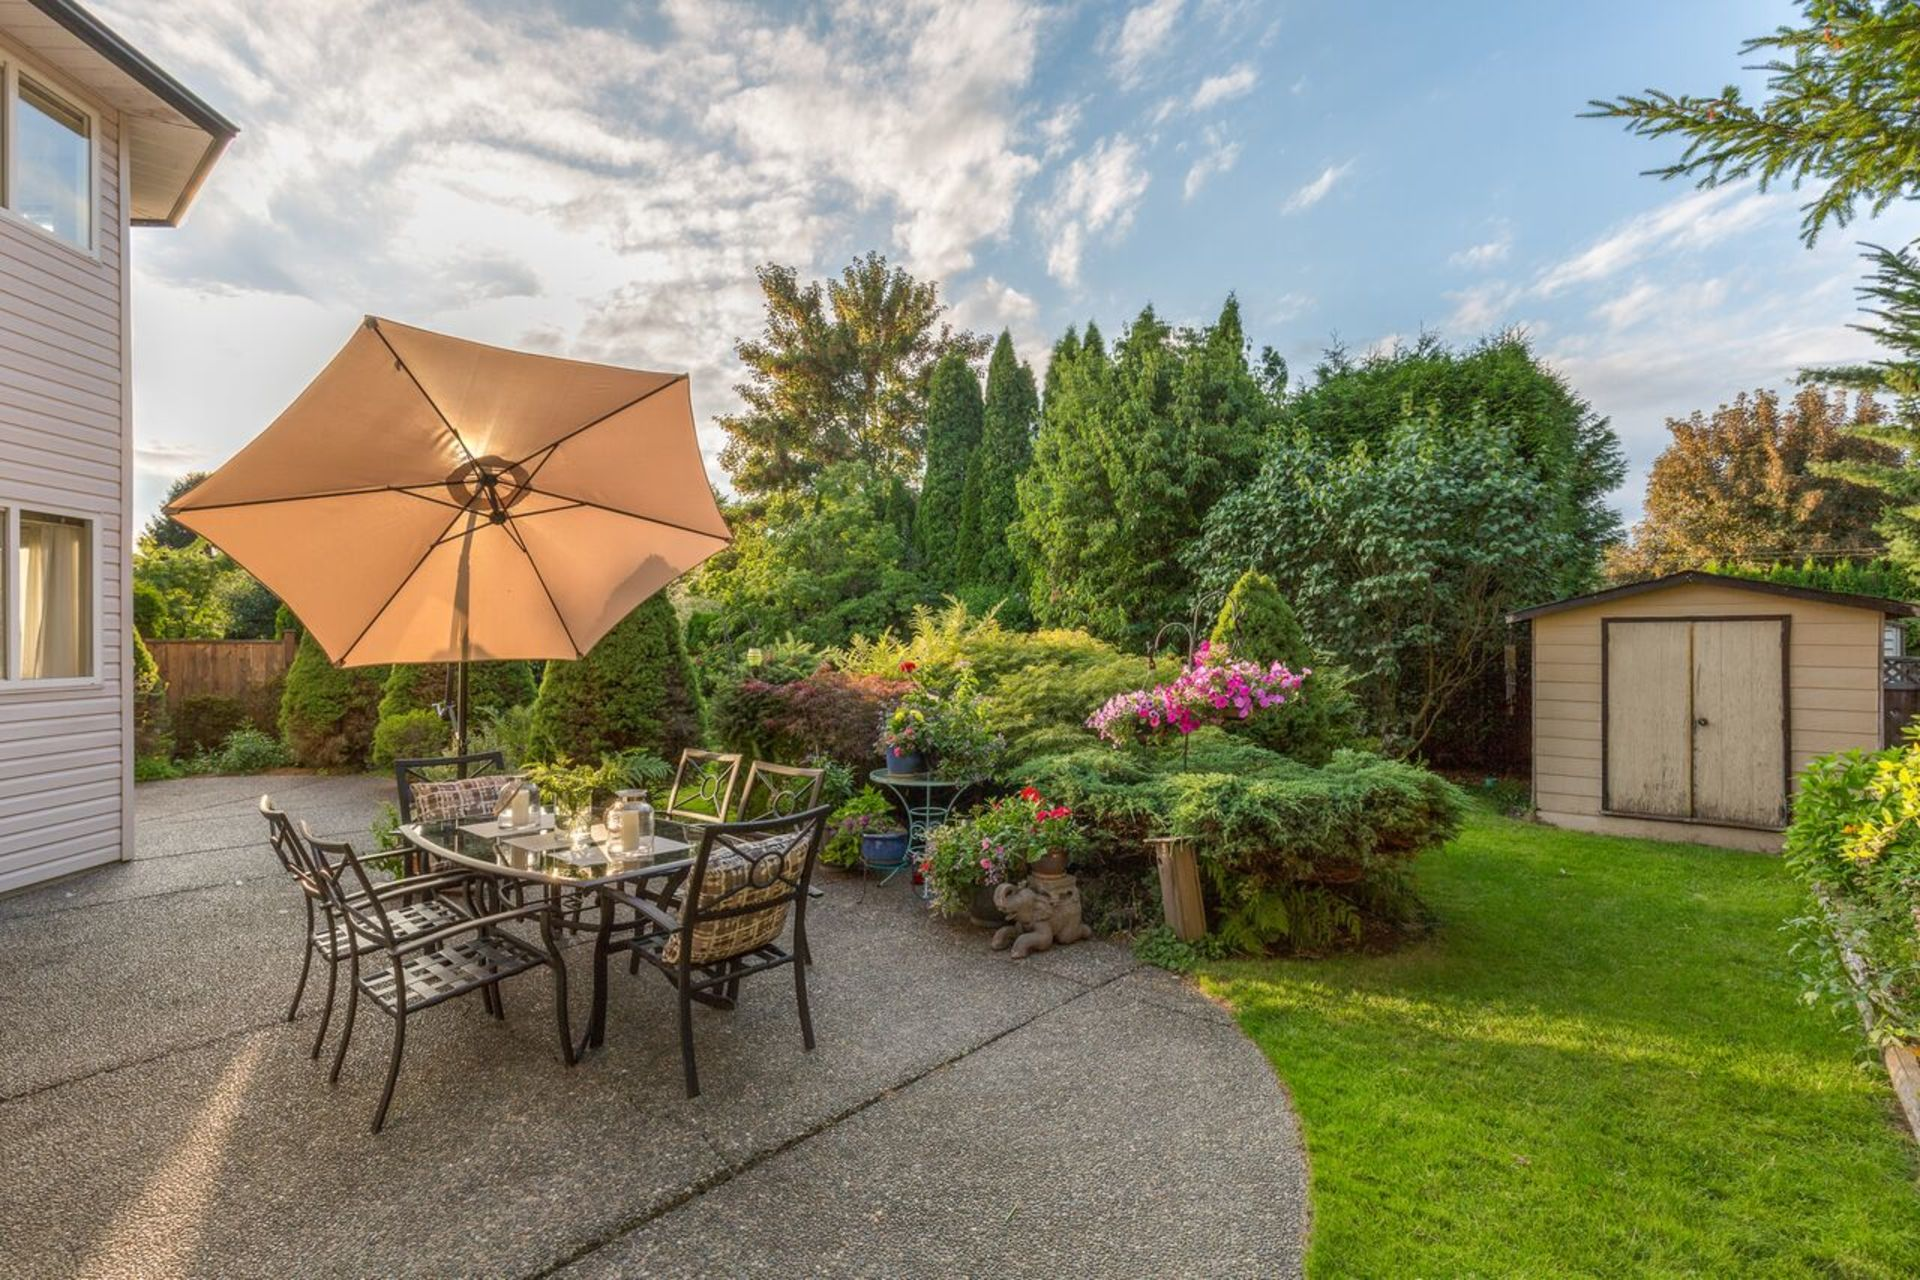 cwewkydw at 19373 119 Avenue, Central Meadows, Pitt Meadows